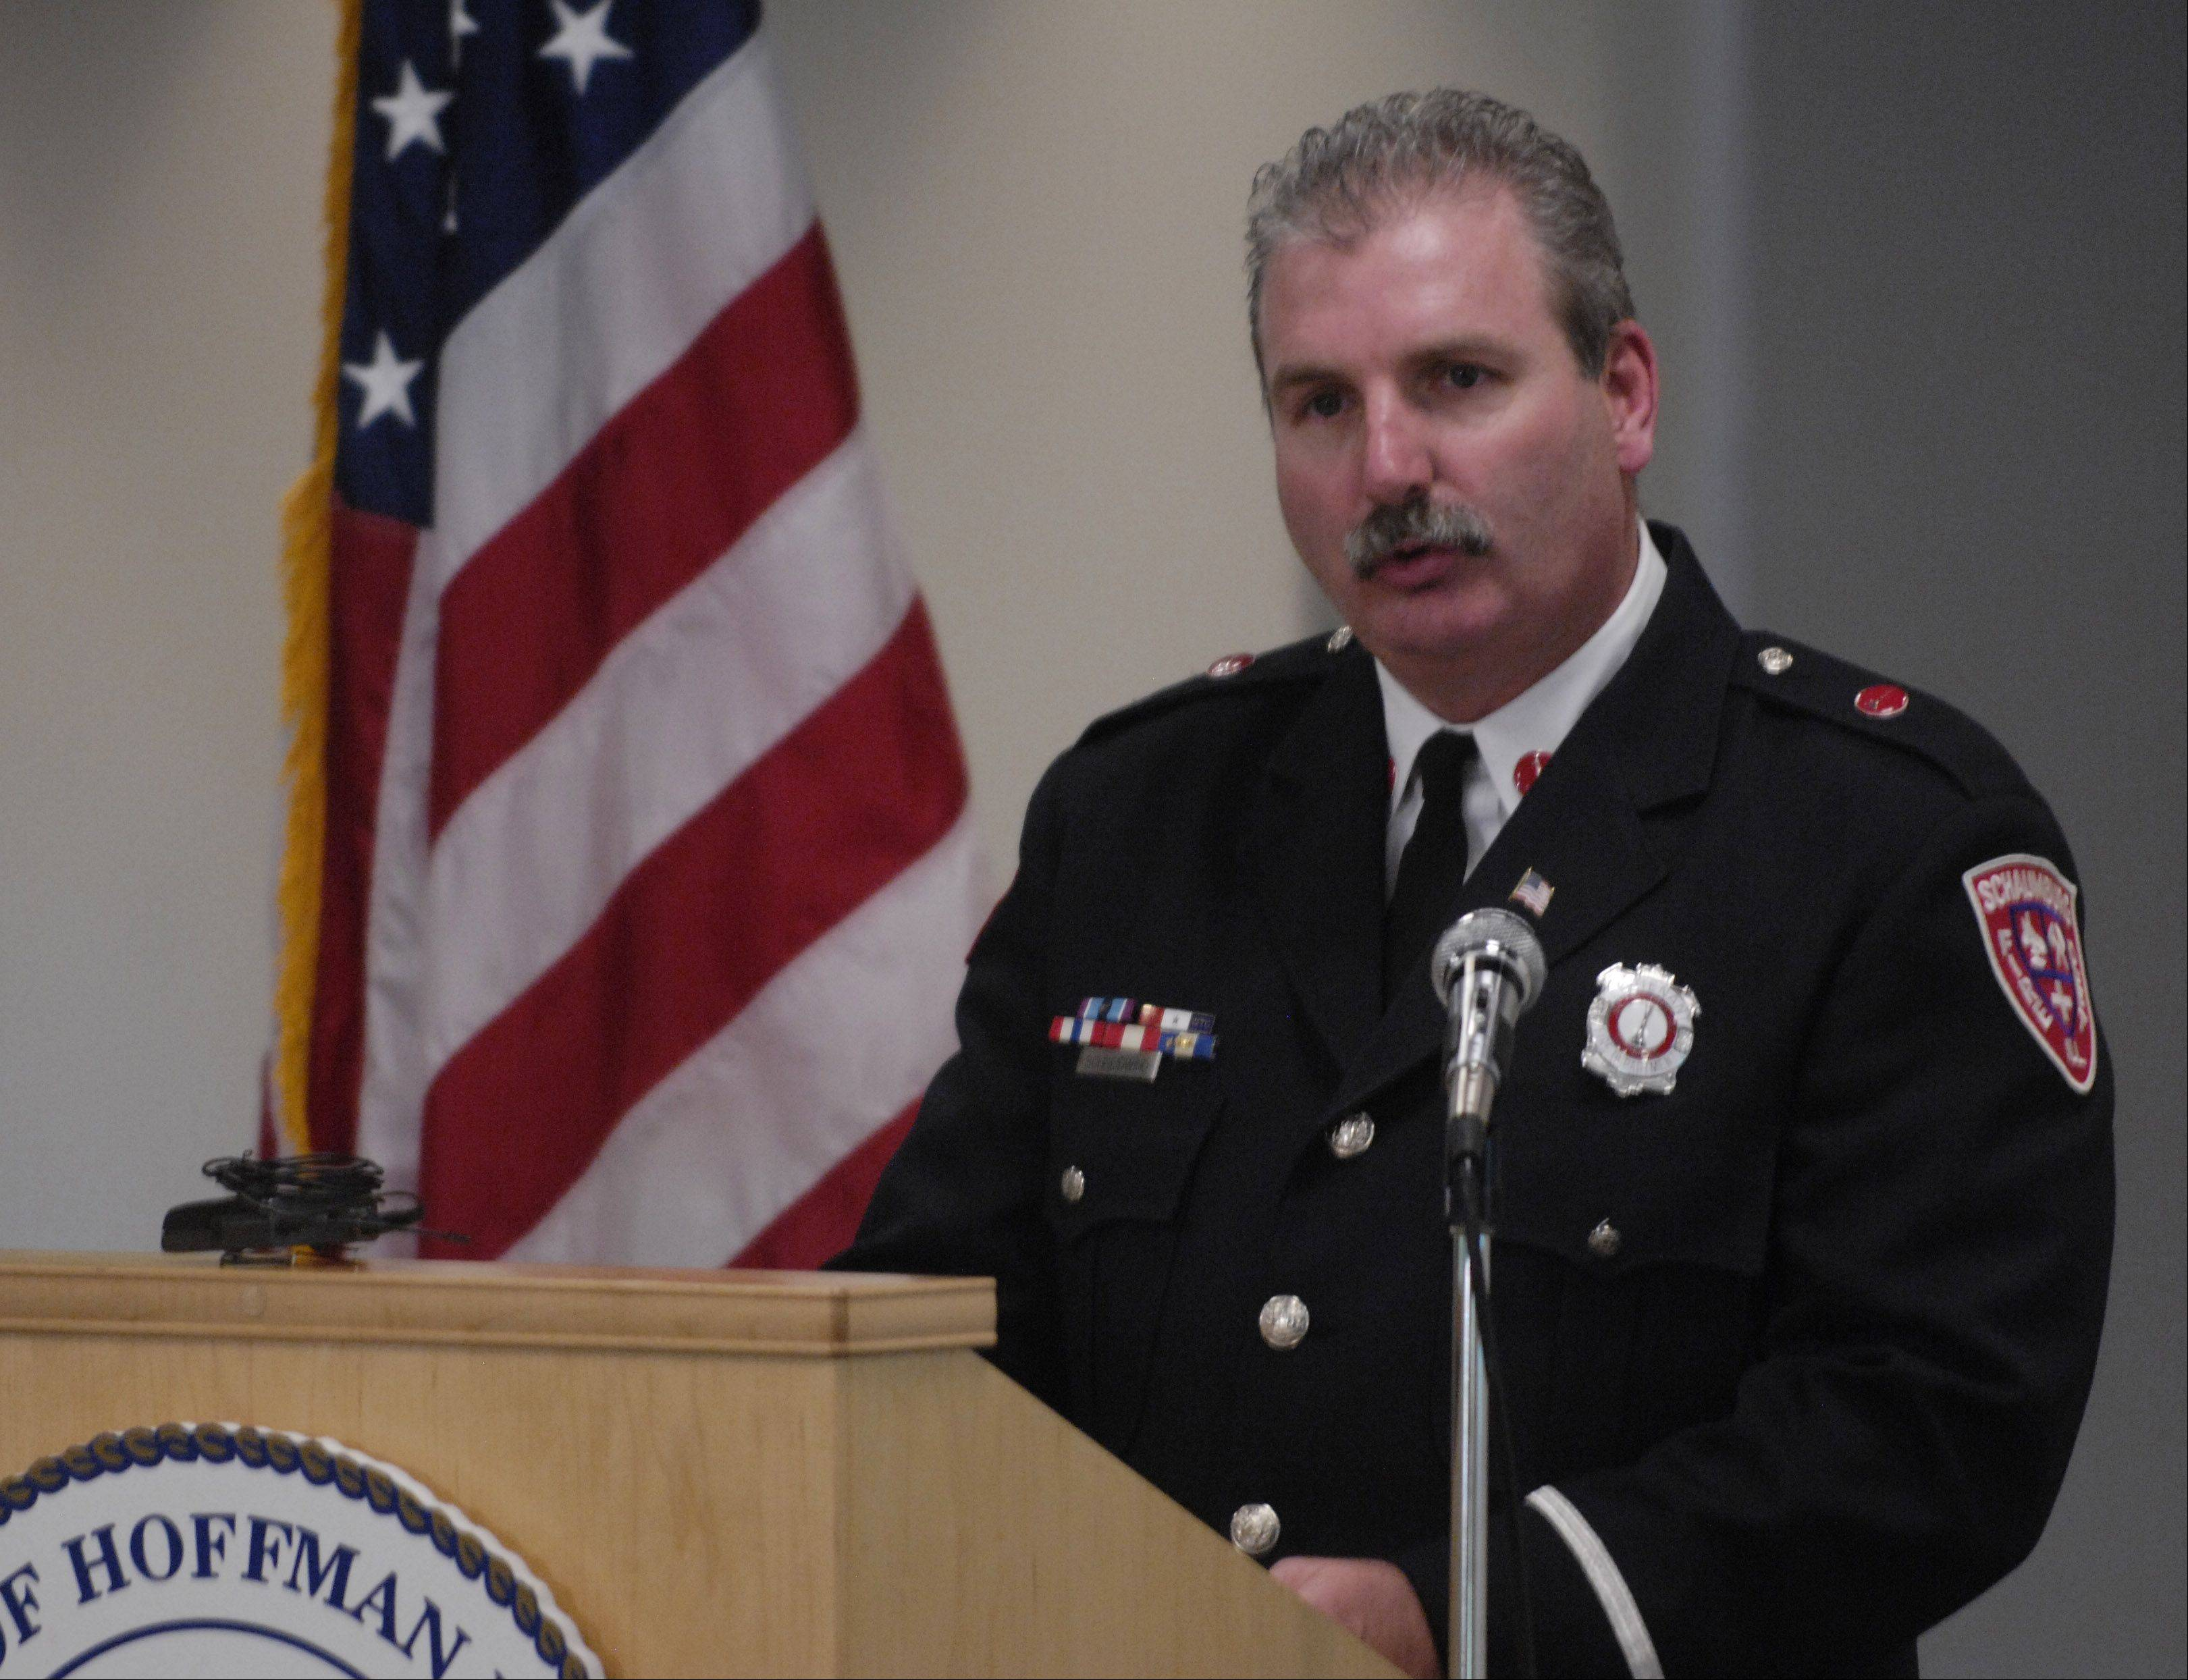 Schaumburg Fire Department Lieutenant John Schneidwind, who assisted at Ground Zero in the wake of 9/11, speaks during the Hoffman Estates annual September 11th Ceremony of Remembrance at the Village Hall Tuesday.